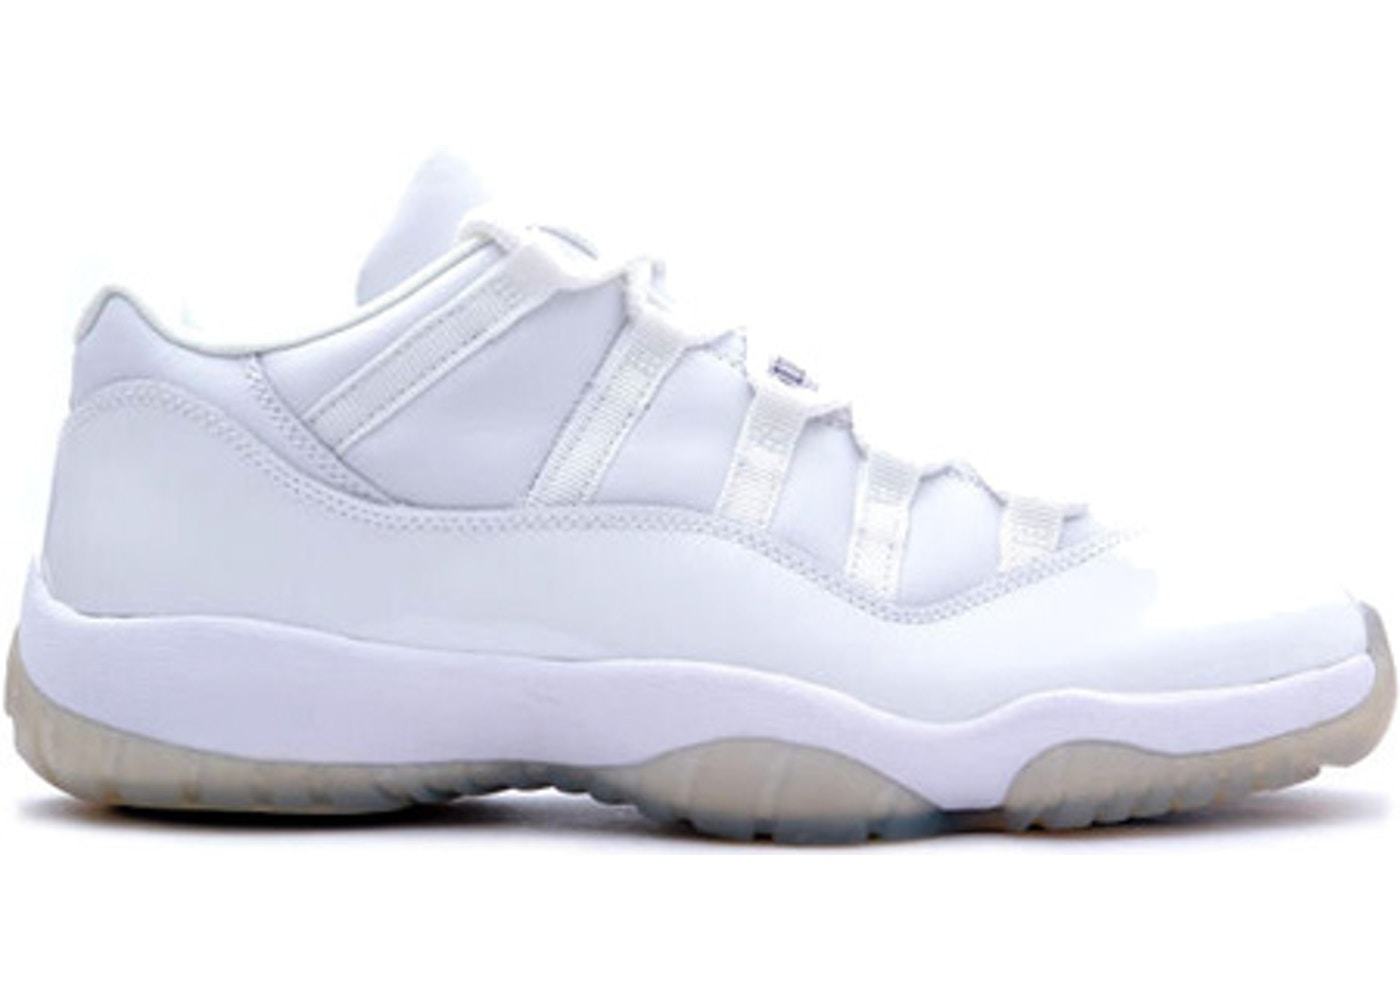 the latest 3af9c 133ee Jordan 11 Retro Low Light Zen Grey